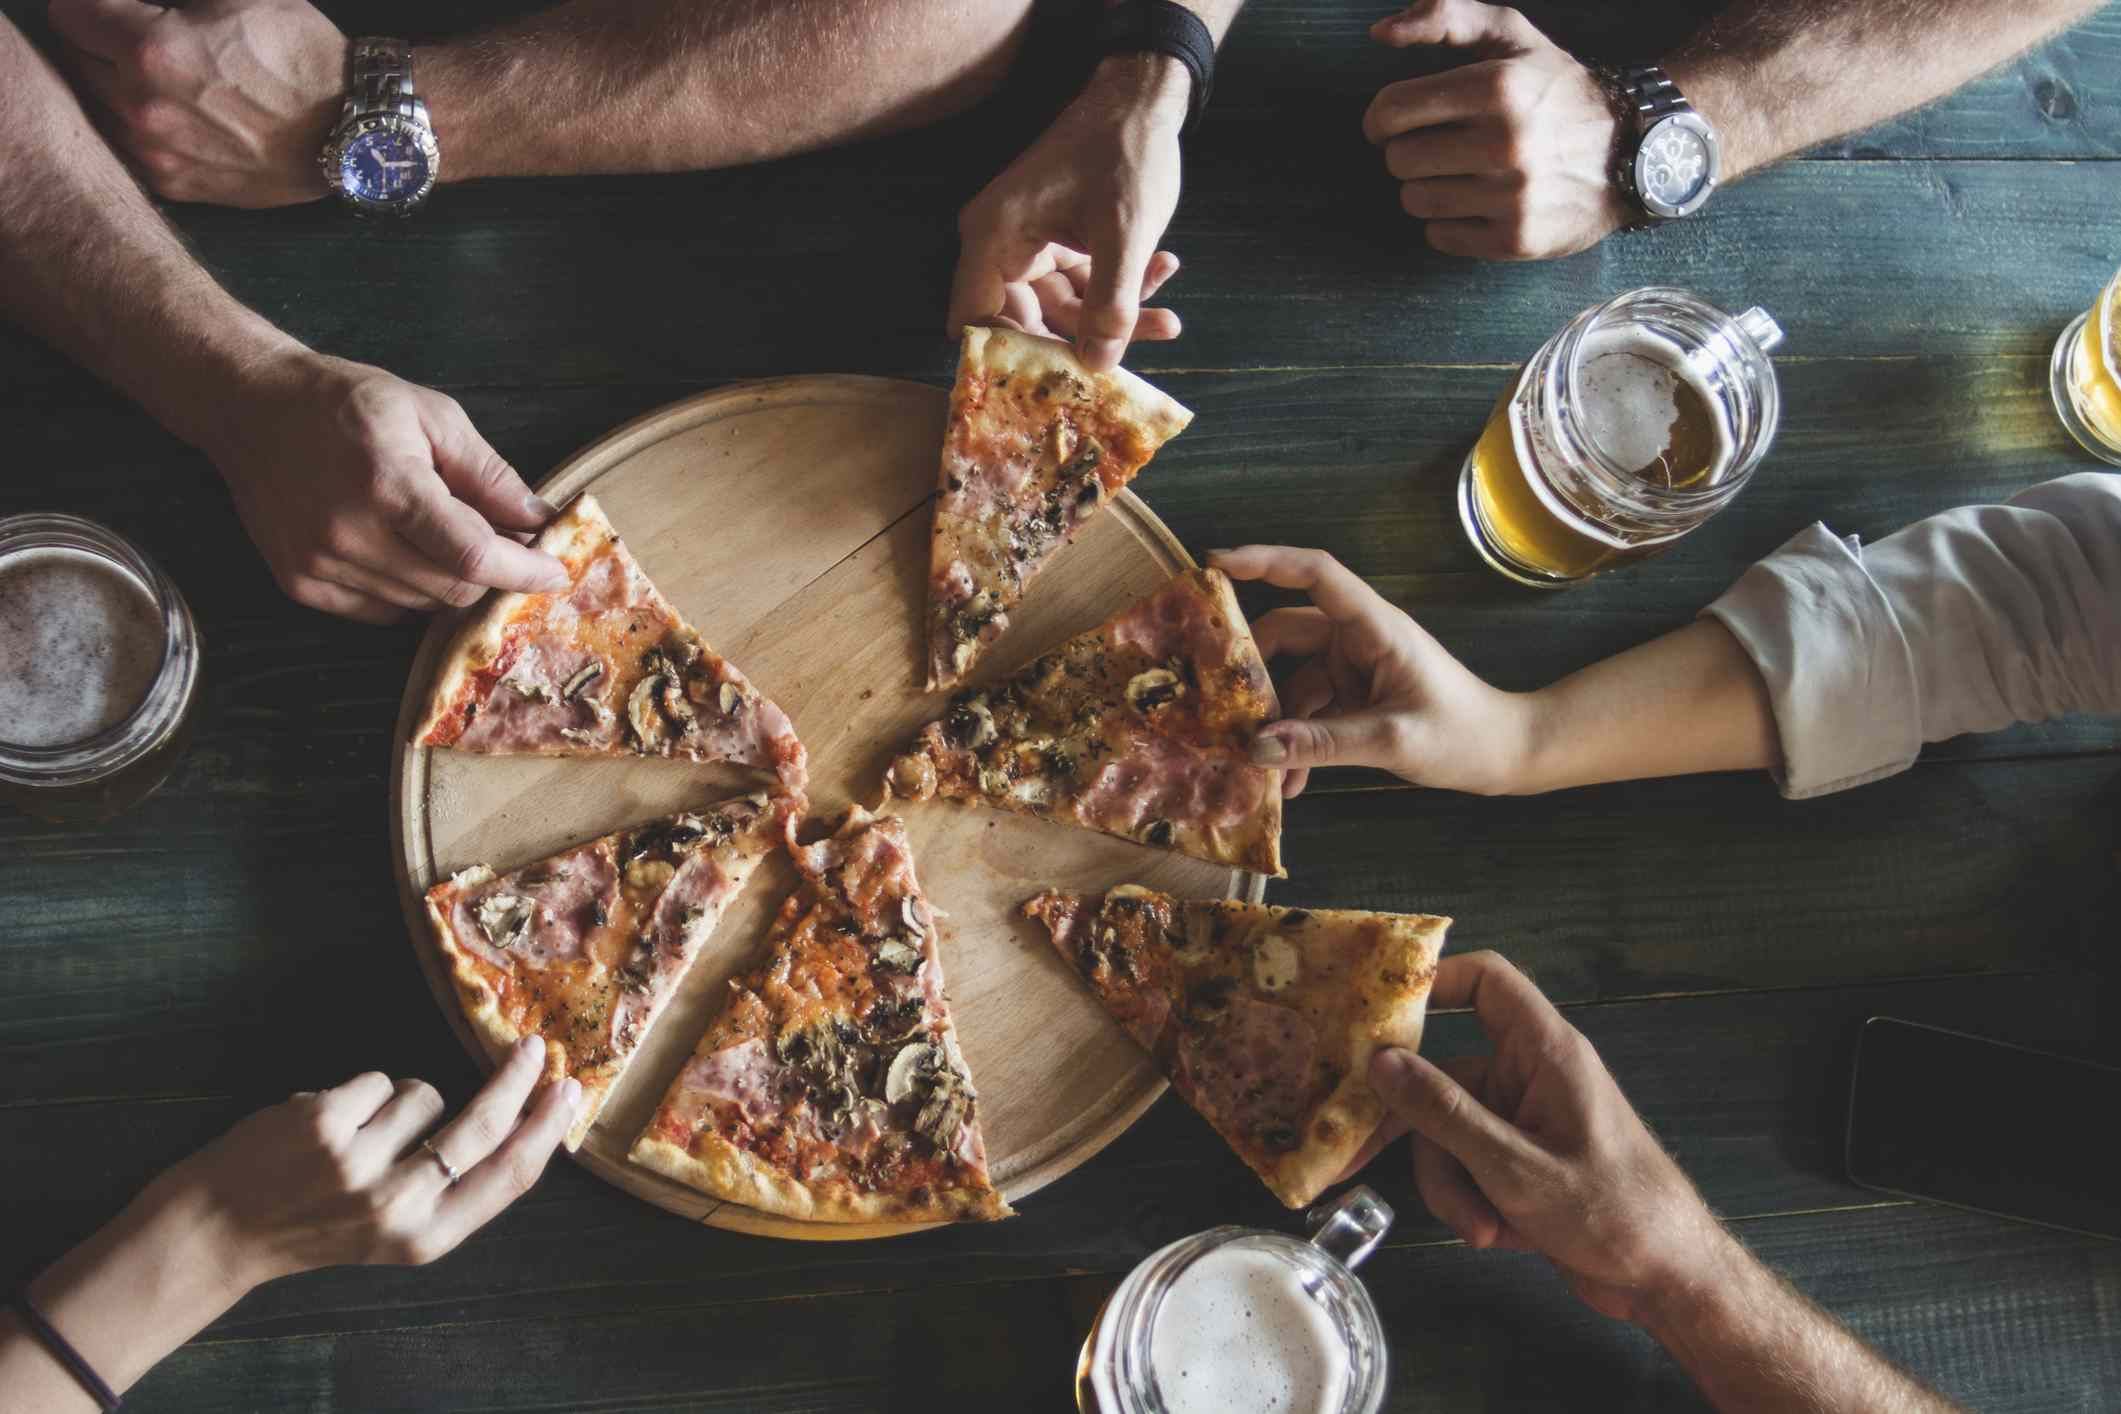 An overhead shot of friends drinking beer and eating pizza.